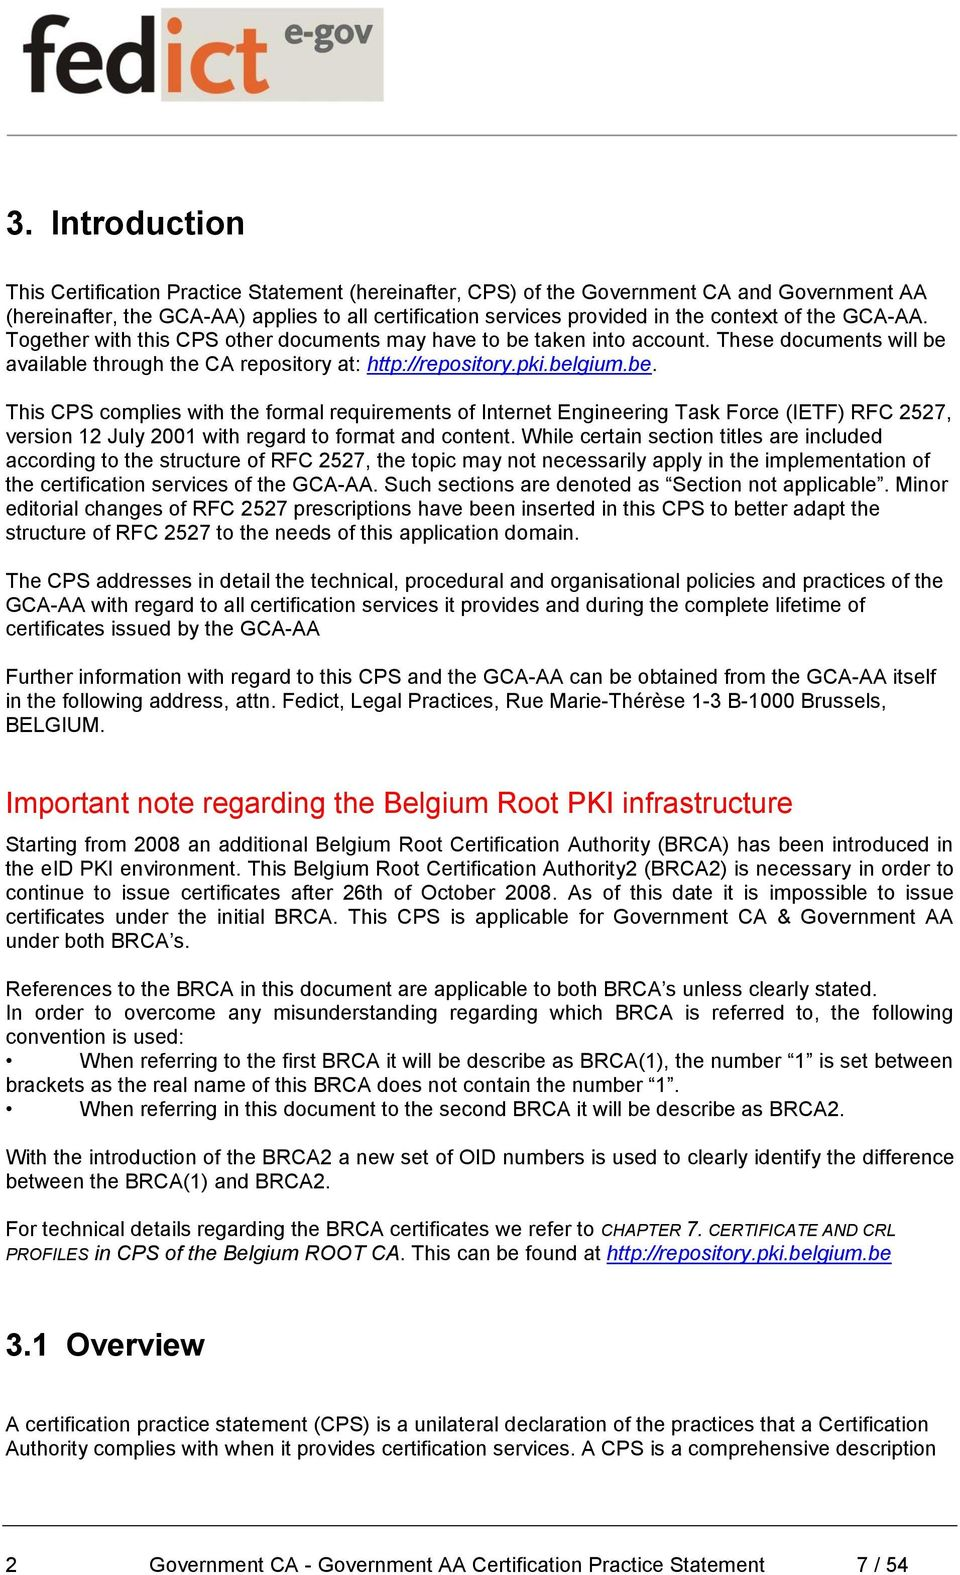 taken into account. These documents will be available through the CA repository at: http://repository.pki.belgium.be. This CPS complies with the formal requirements of Internet Engineering Task Force (IETF) RFC 2527, version 12 July 2001 with regard to format and content.